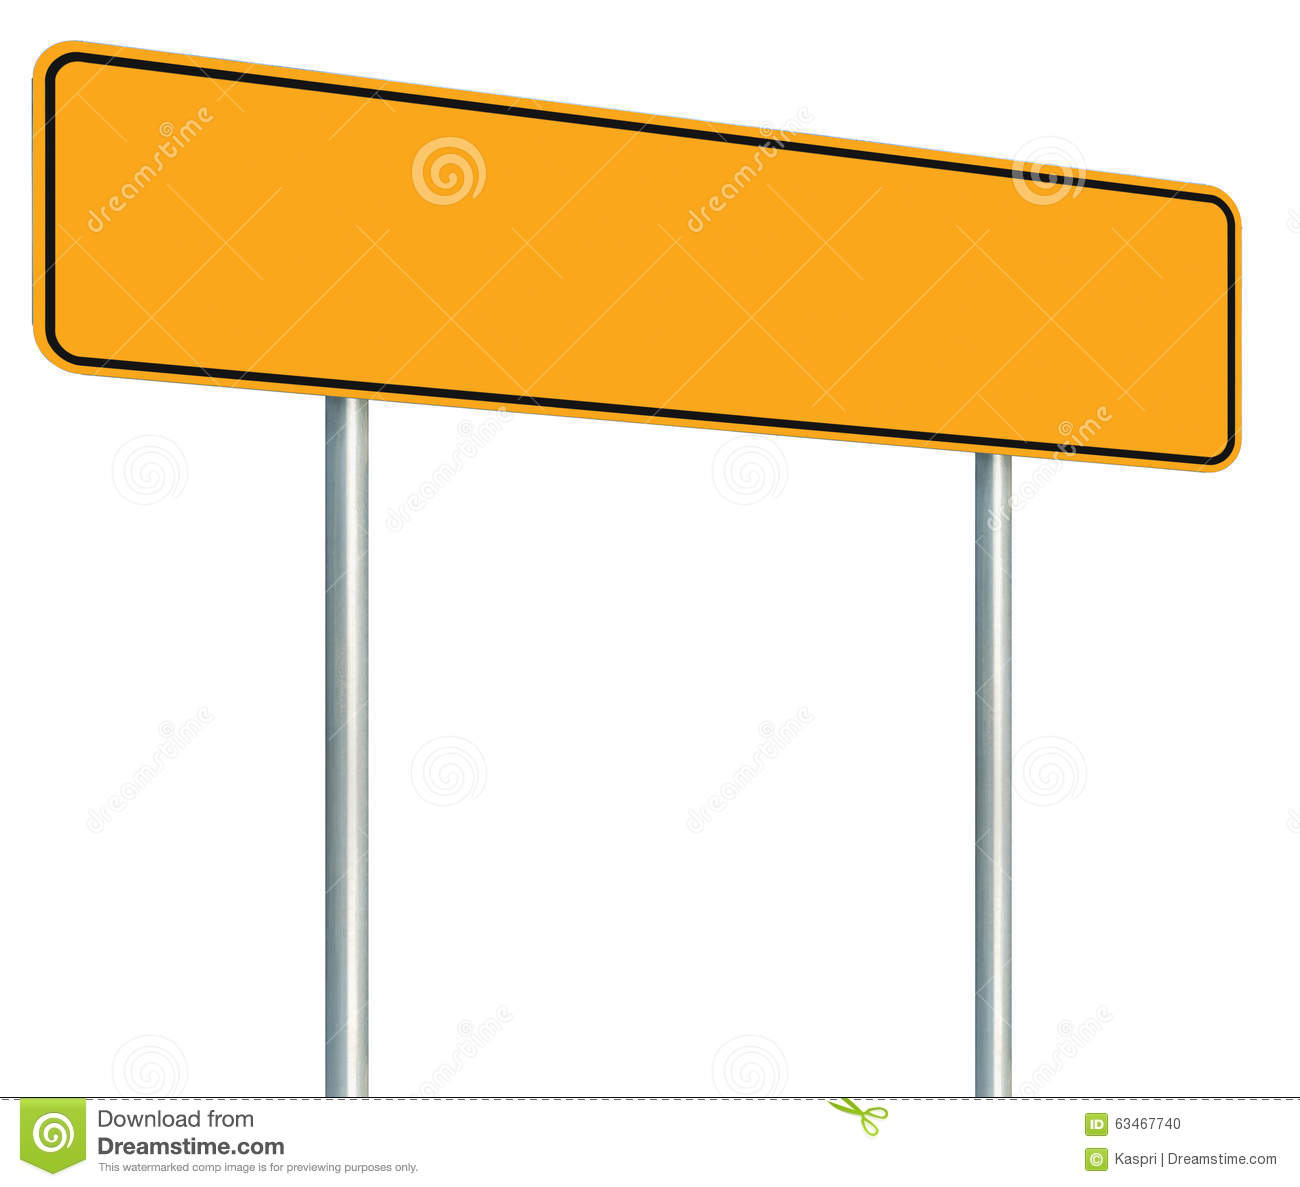 Blank Yellow Road Sign Isolated Large Warning Copy Space